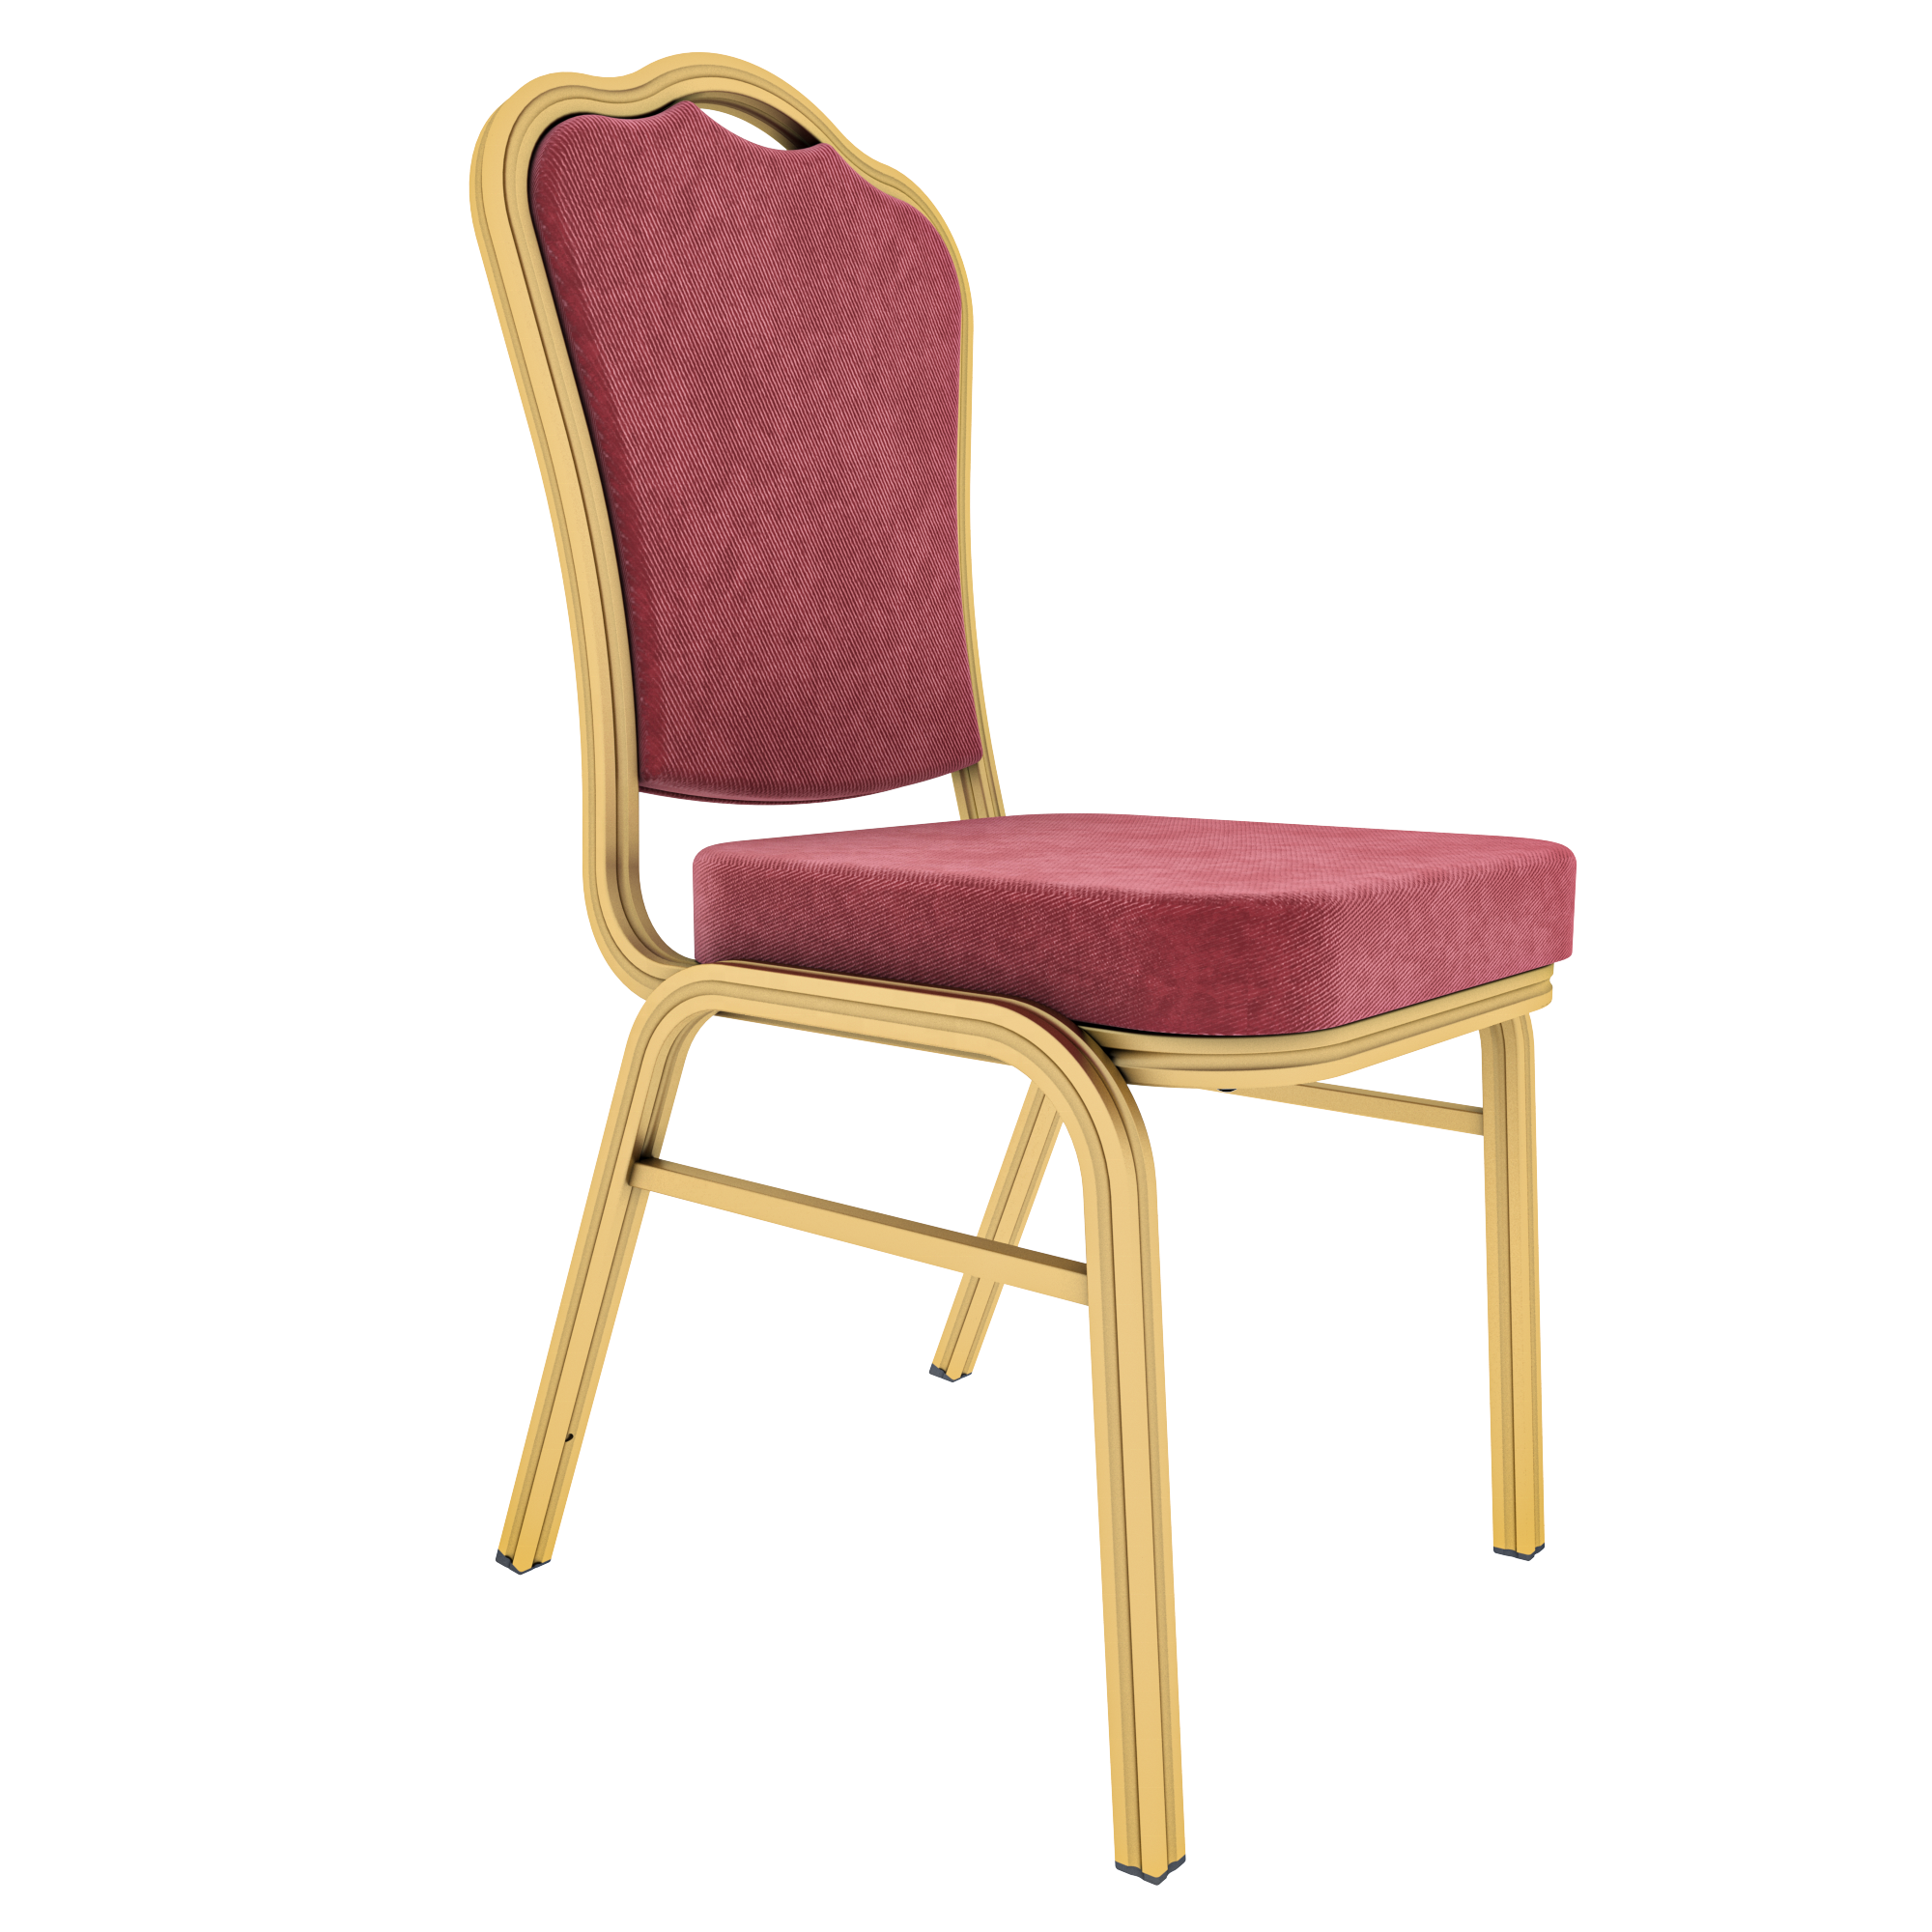 High Quality Gorgeous Elegant Wholesale Price Banquet Dinner Party Chairs For Restaurant Hotel Shipping Mall